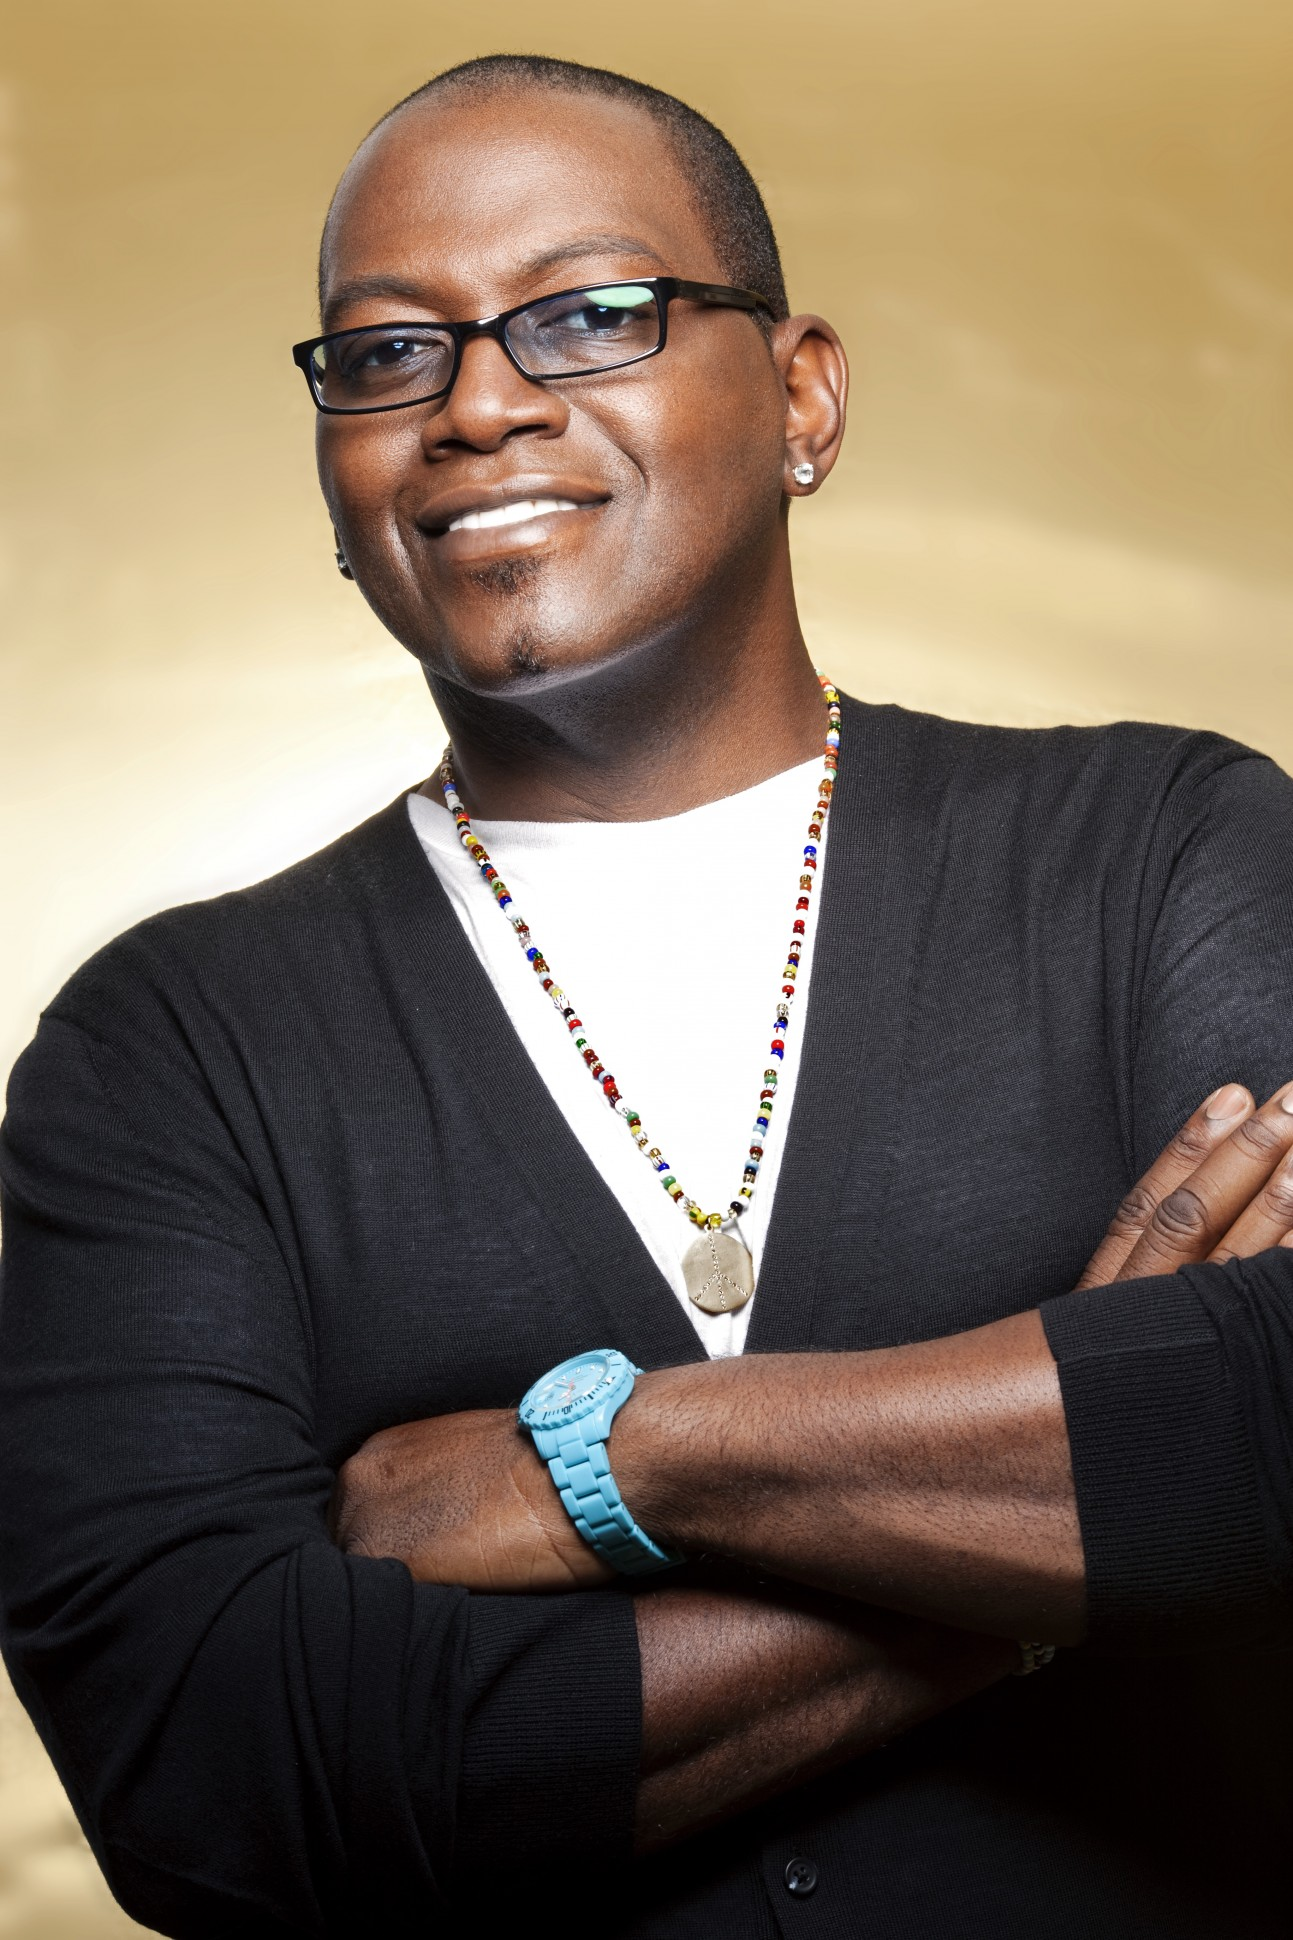 Randy Jackson Is The Quintessential Renegade Millionaire - Forbes